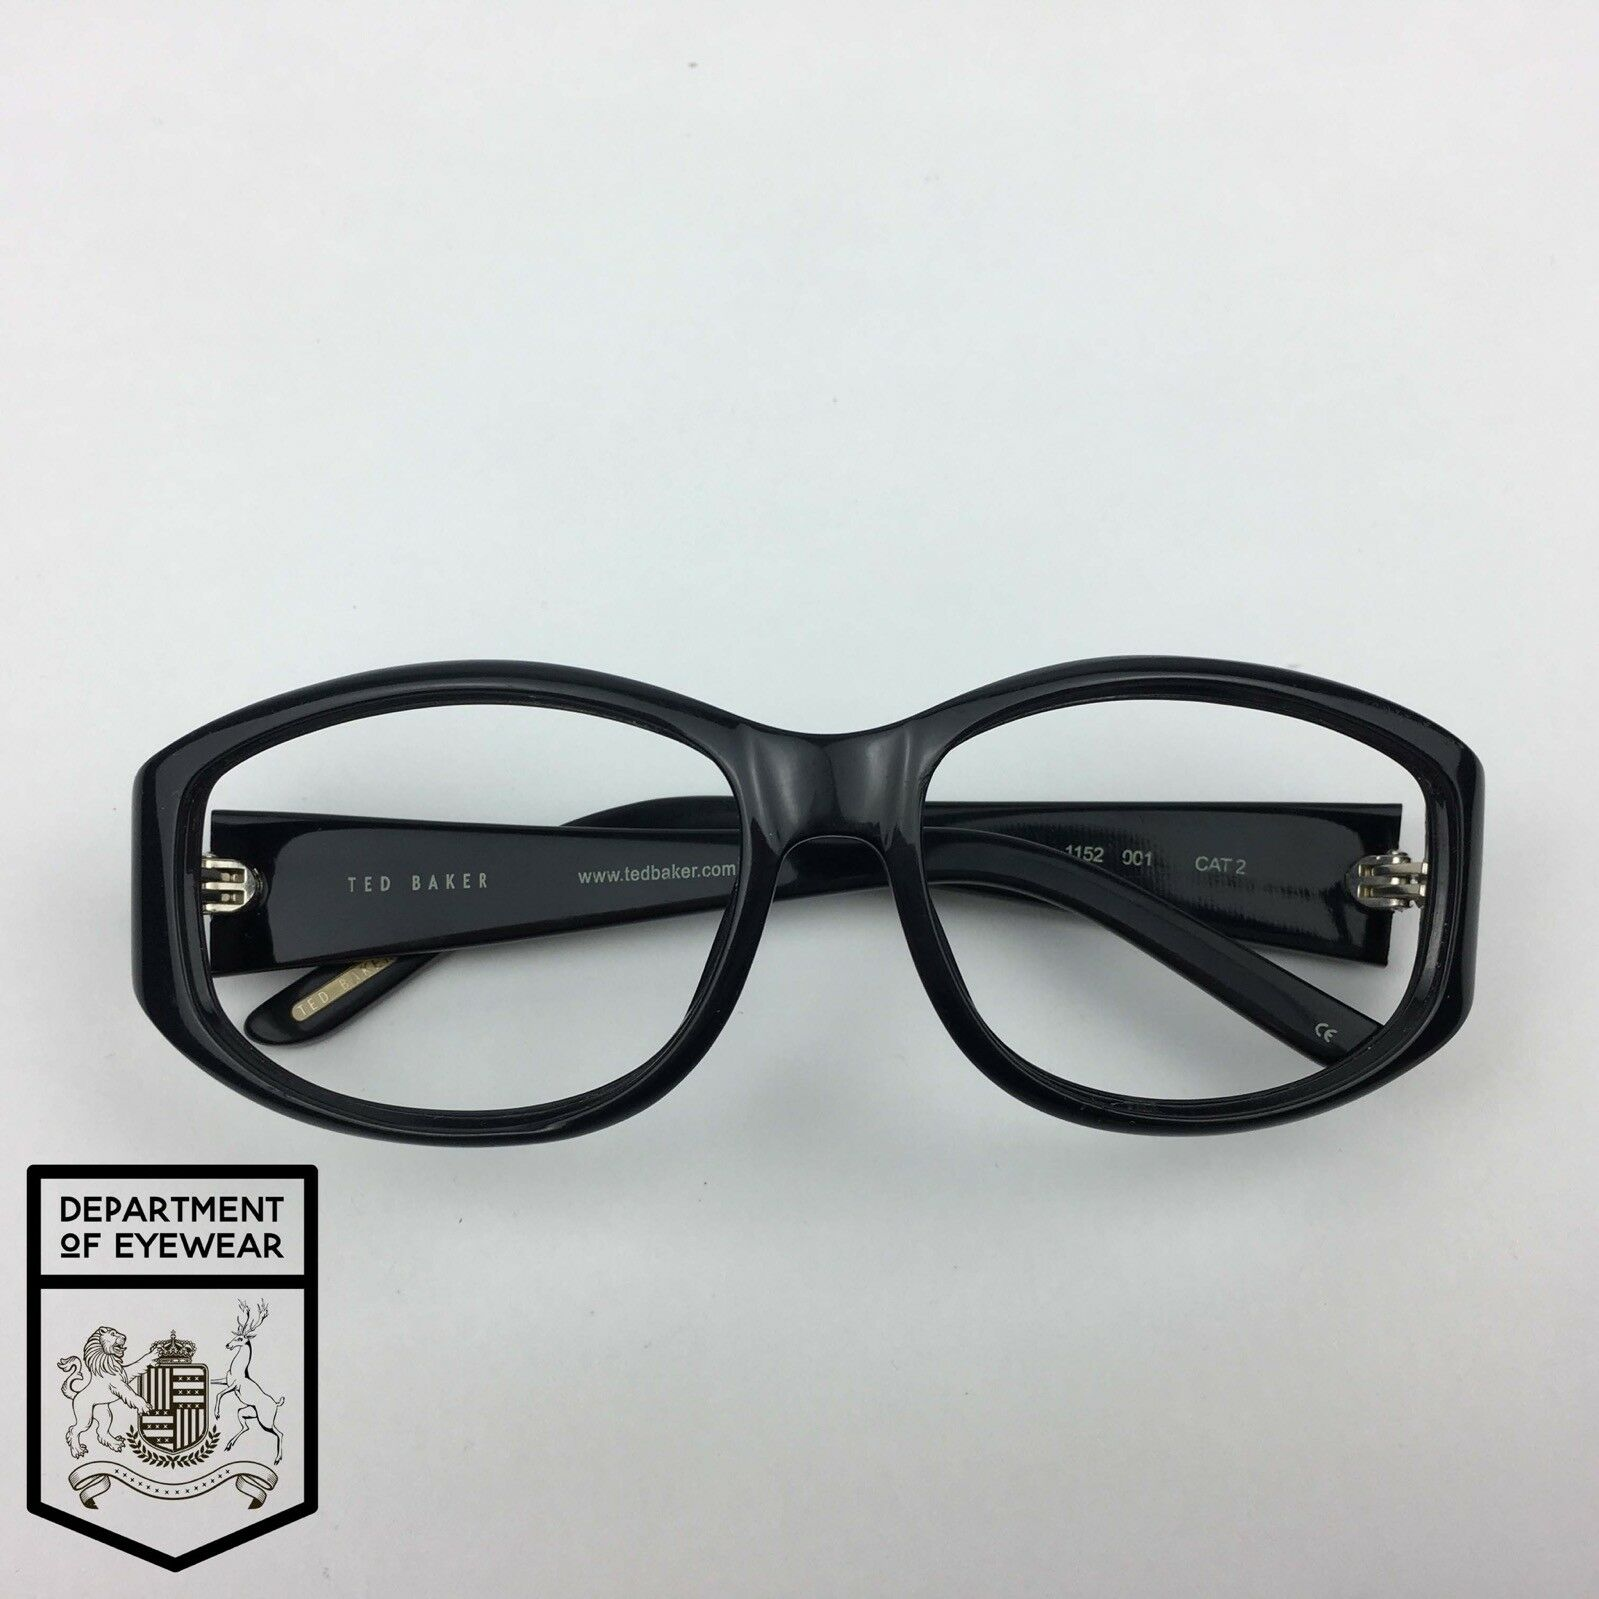 f53b84d2d6f7 Ted Baker Eyeglass Black Rectangle Frame Authentic. Mod Lydia 1152 for sale  online